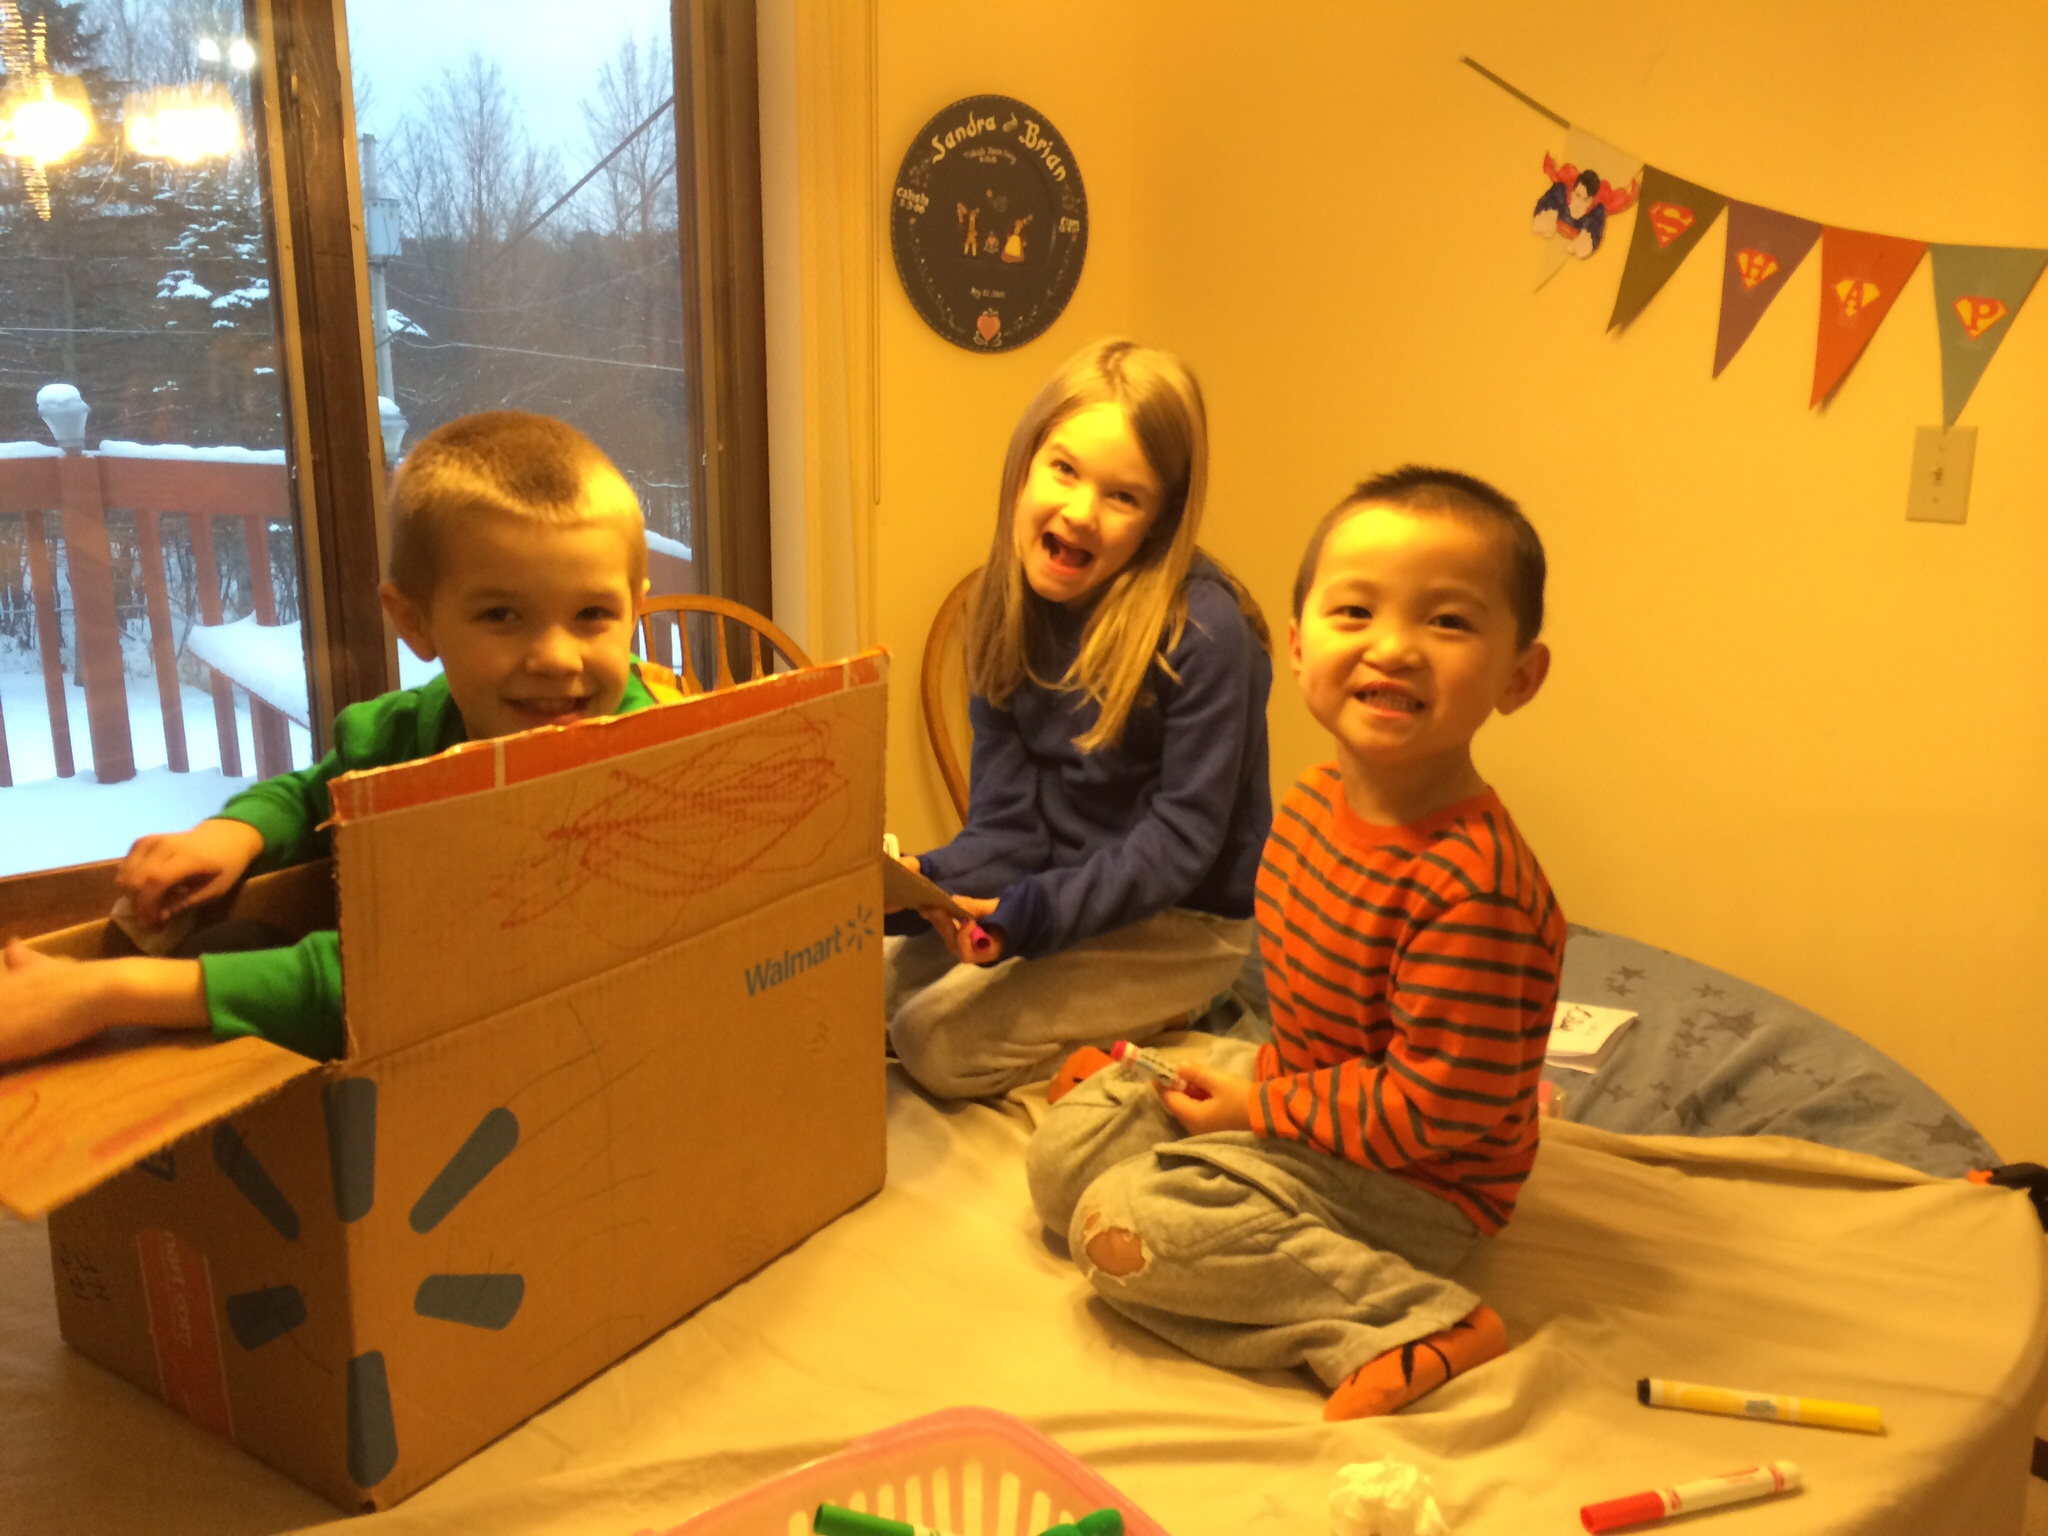 When my kids are sick I like to out them on the table in a box... What do you do?